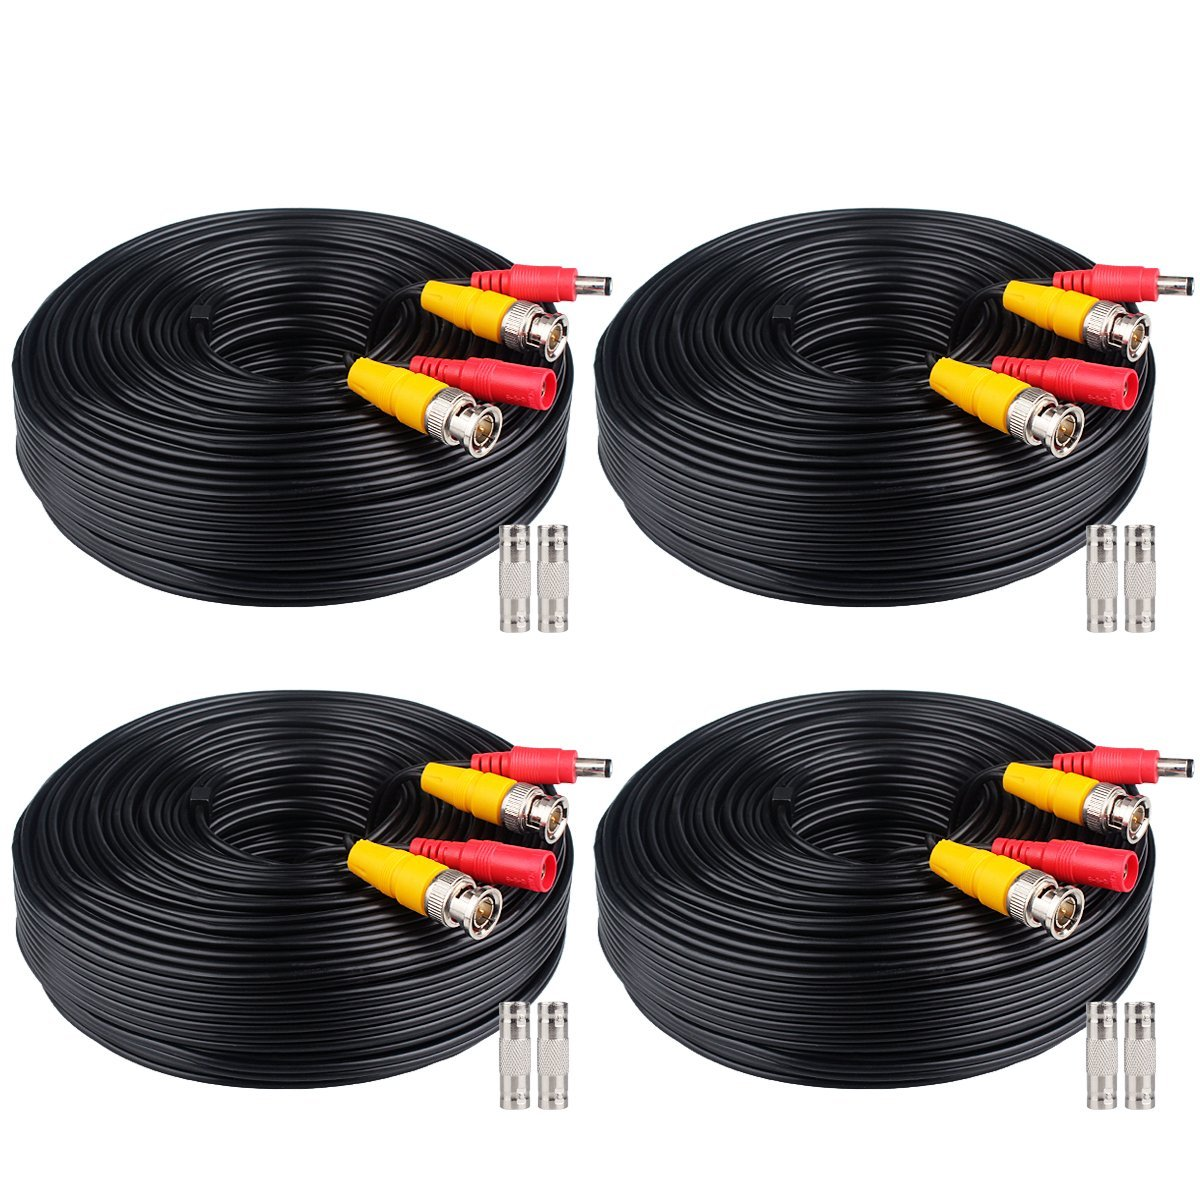 WildHD 4x200ft BNC Cable All-in-One Siamese Video and Power Security Camera Cable Extension Wire Cord with 2 Female Connetors for All Max 5MP HD CCTV DVR Surveillance System (200ft 4pack Cable, Black) by WildHD